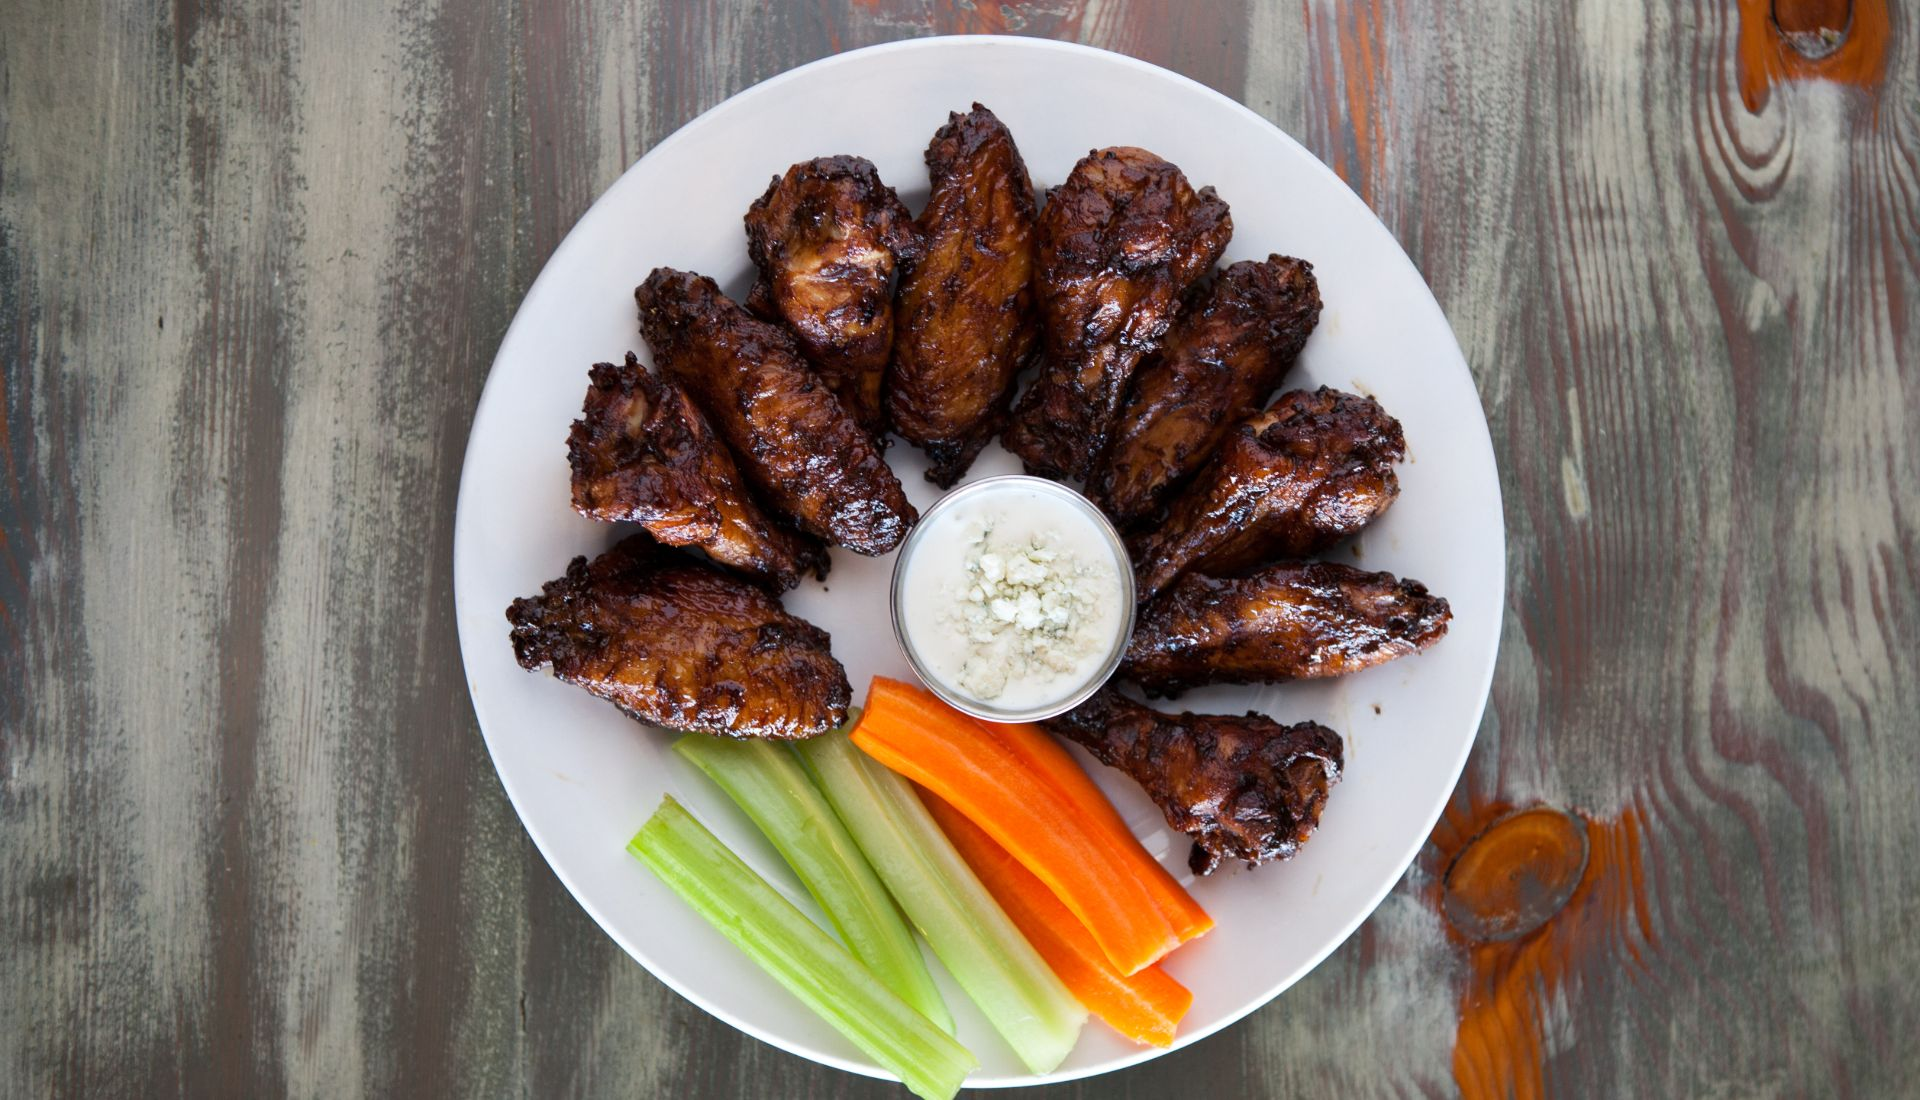 BBQ chicken wings on a plate with bleu cheese, carrots and celery